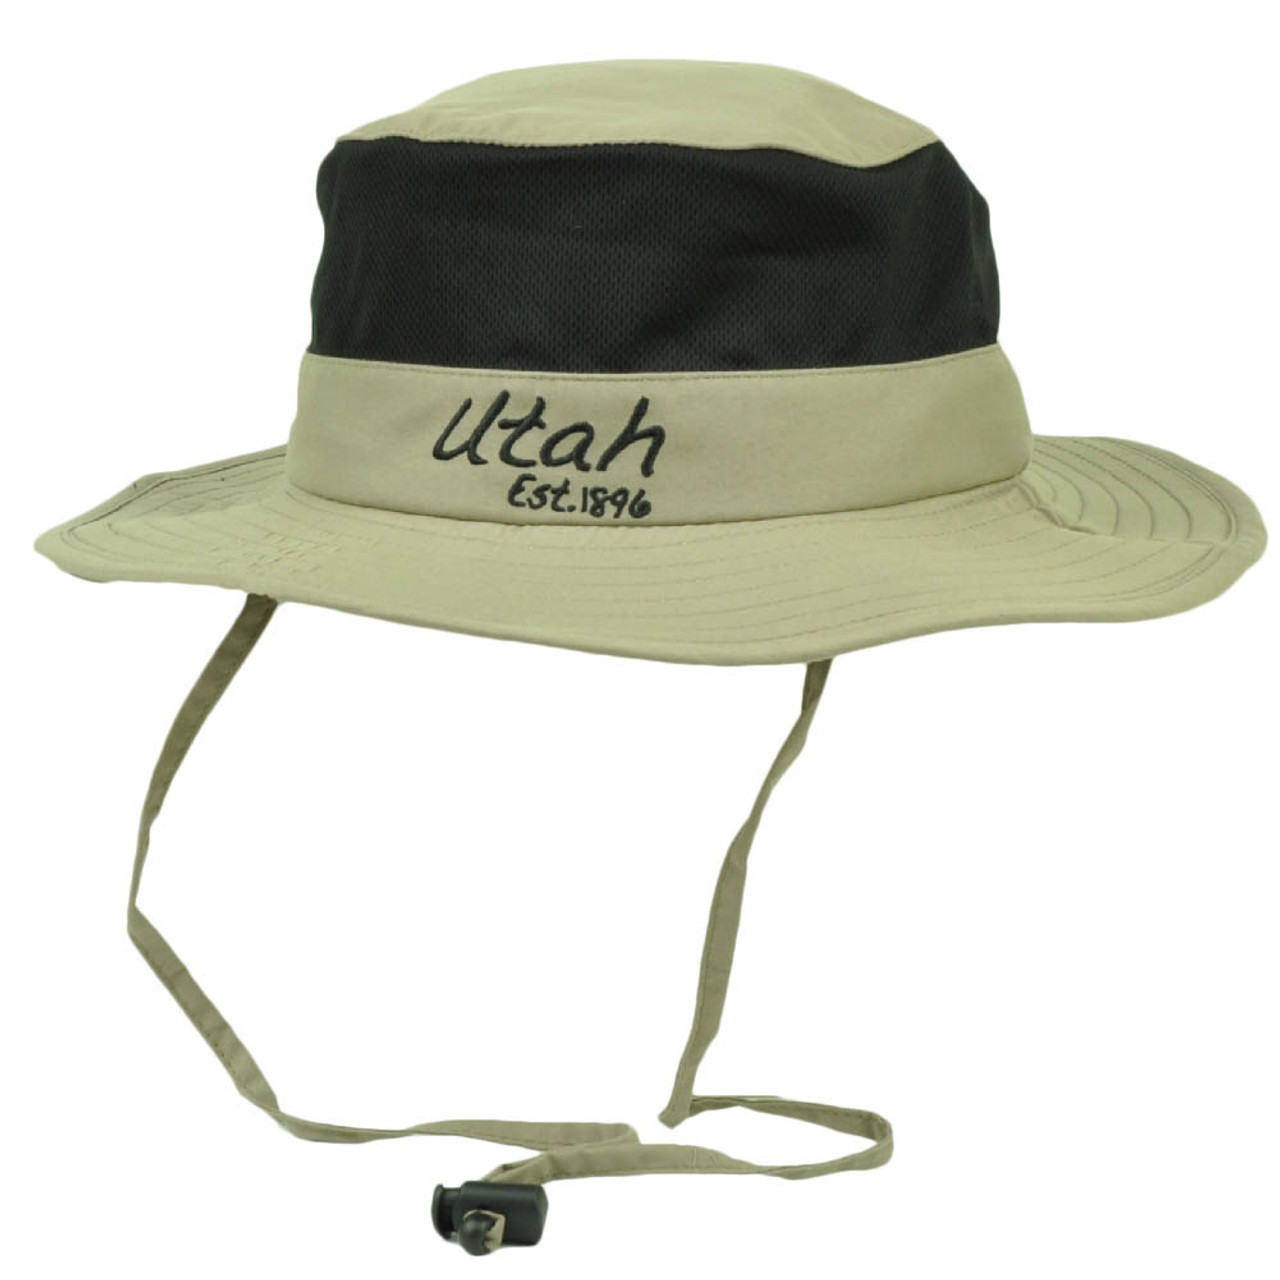 d671f8c0aabd27 Utah State Stone Booney Sun bucket Hat Chin Strap Mesh Band Outdoors USA  Crusher - Cap Store Online.com